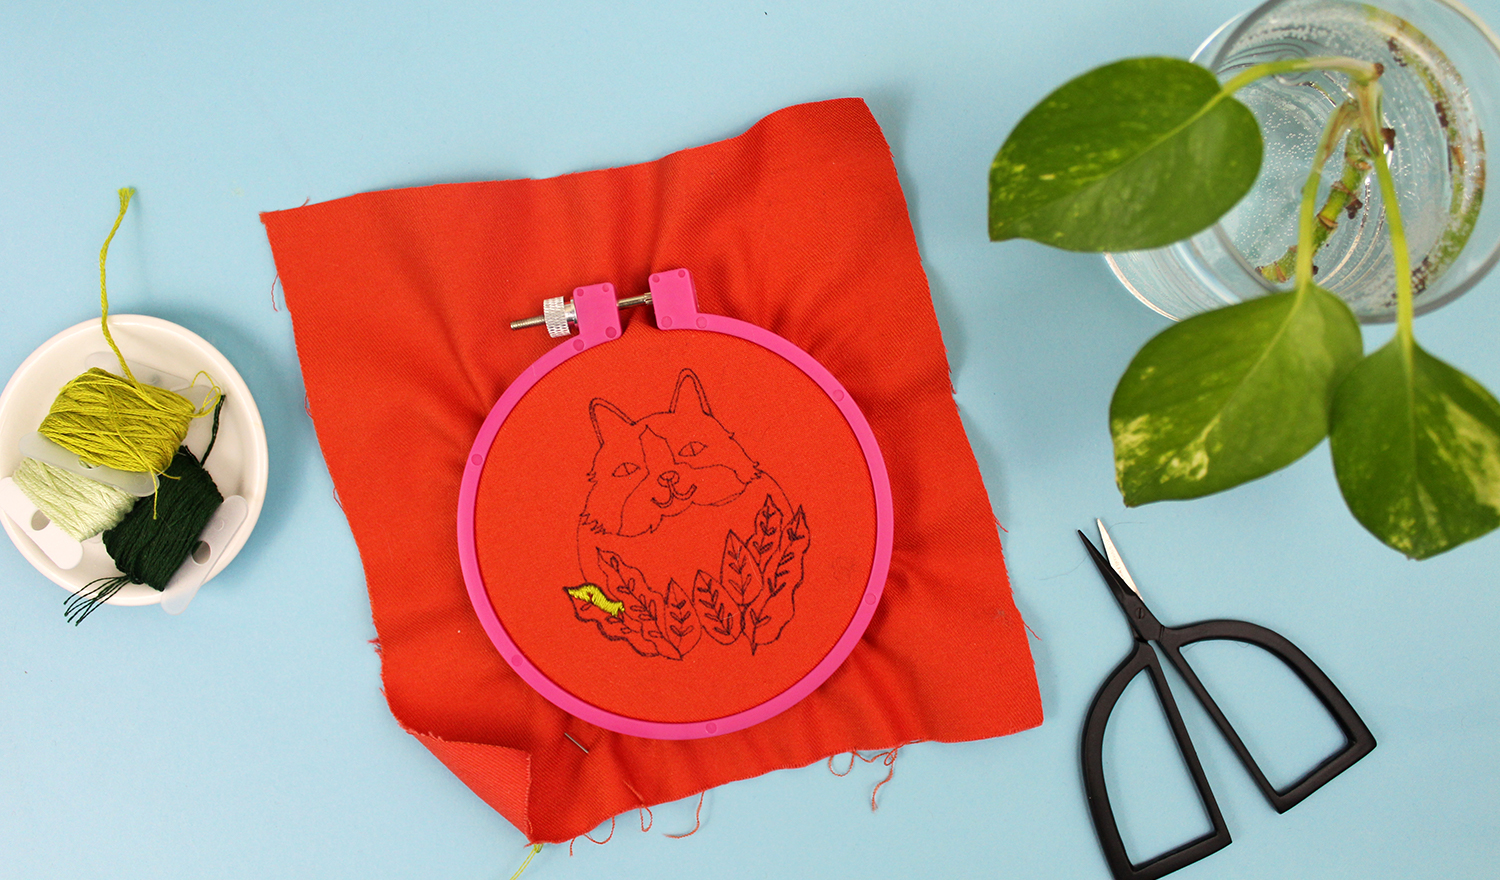 Cat embroidery in progress